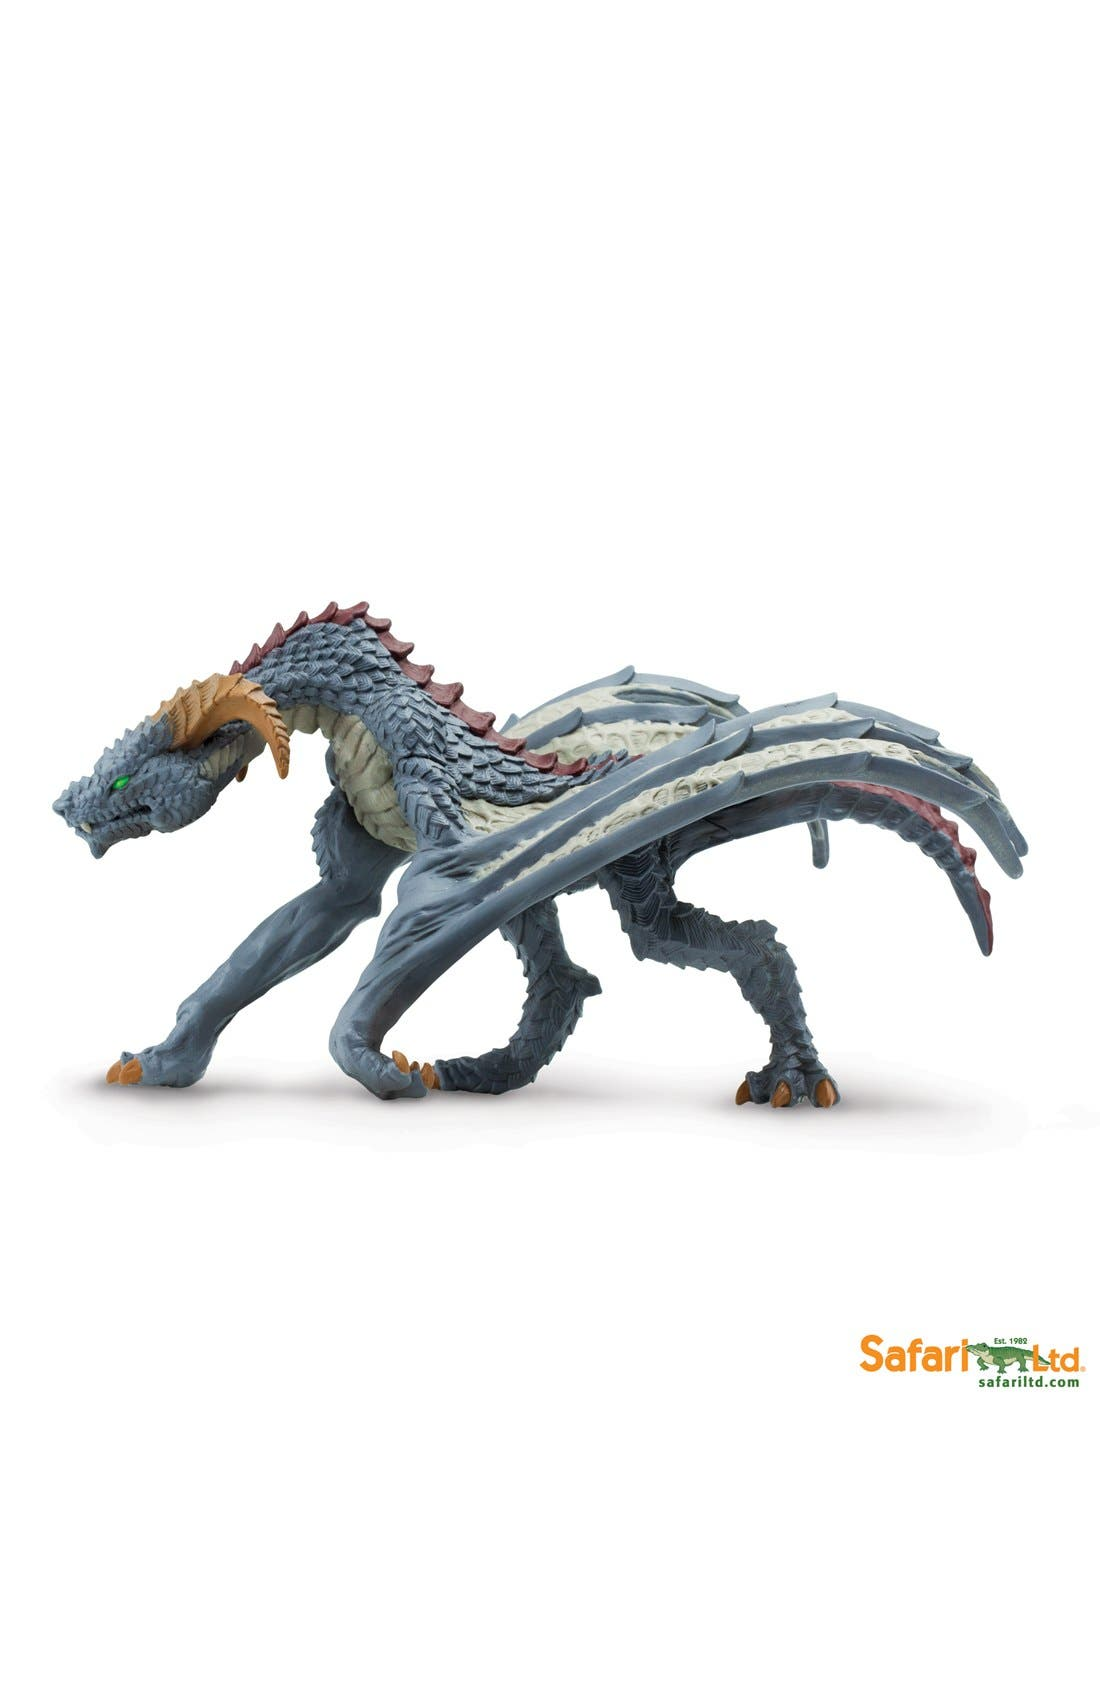 Main Image - Safari Ltd. Cave Dragon Figurine